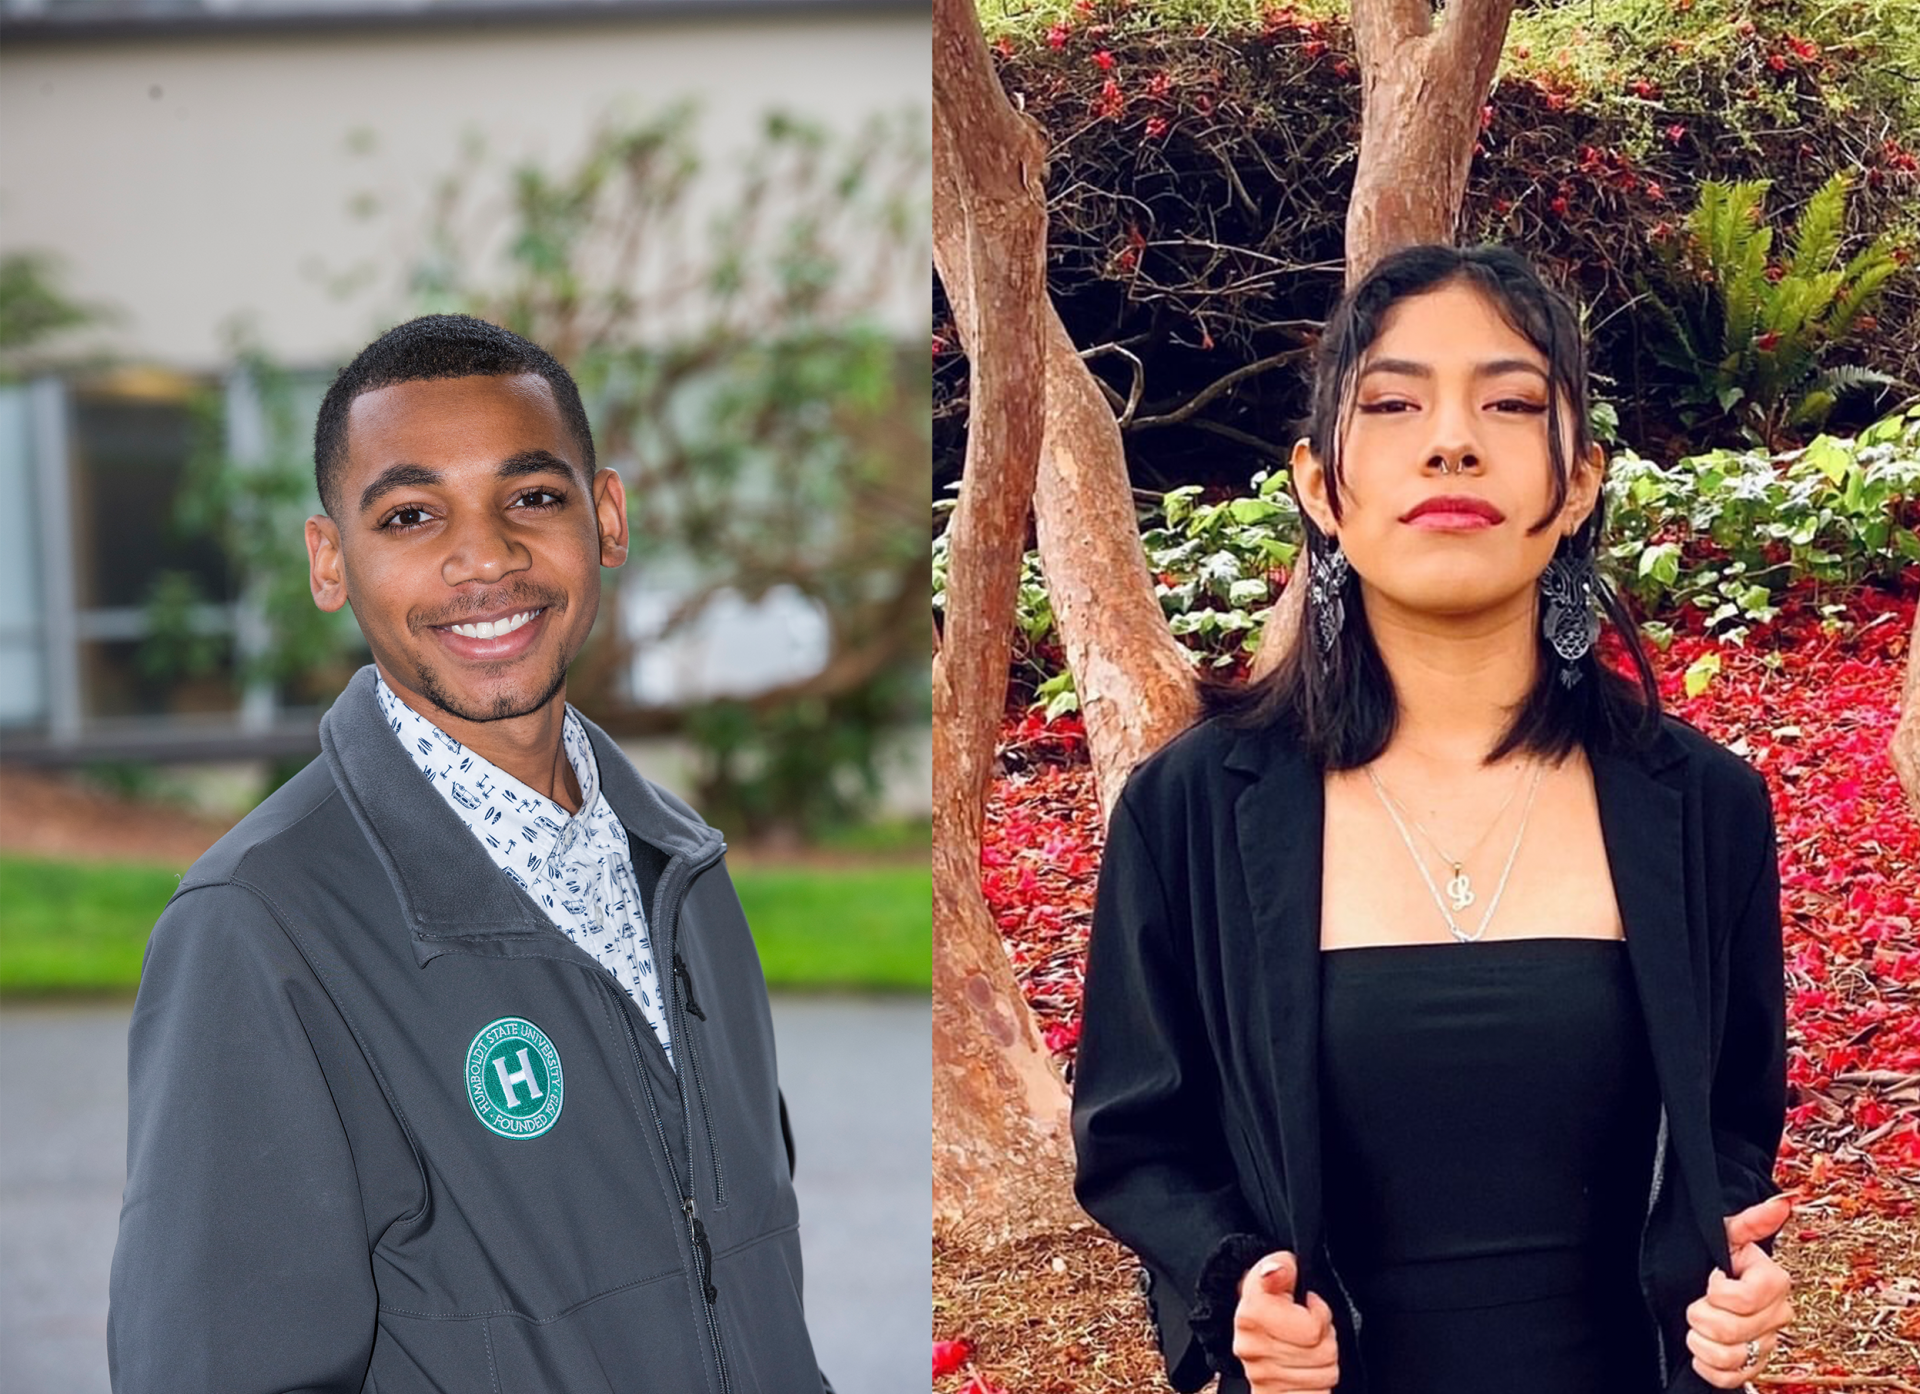 Left: Jeremiah Finley is the current AS President and is up for reelection for the 2021-22 school year. Right: Lizbeth Cano-Sanchez is running for AS President for the second time following her take over in Spring 2020 for then President, Yadira Cruz. | Photos Courtesy Jeremiah Finley and Lizbeth Cano-Sanchez